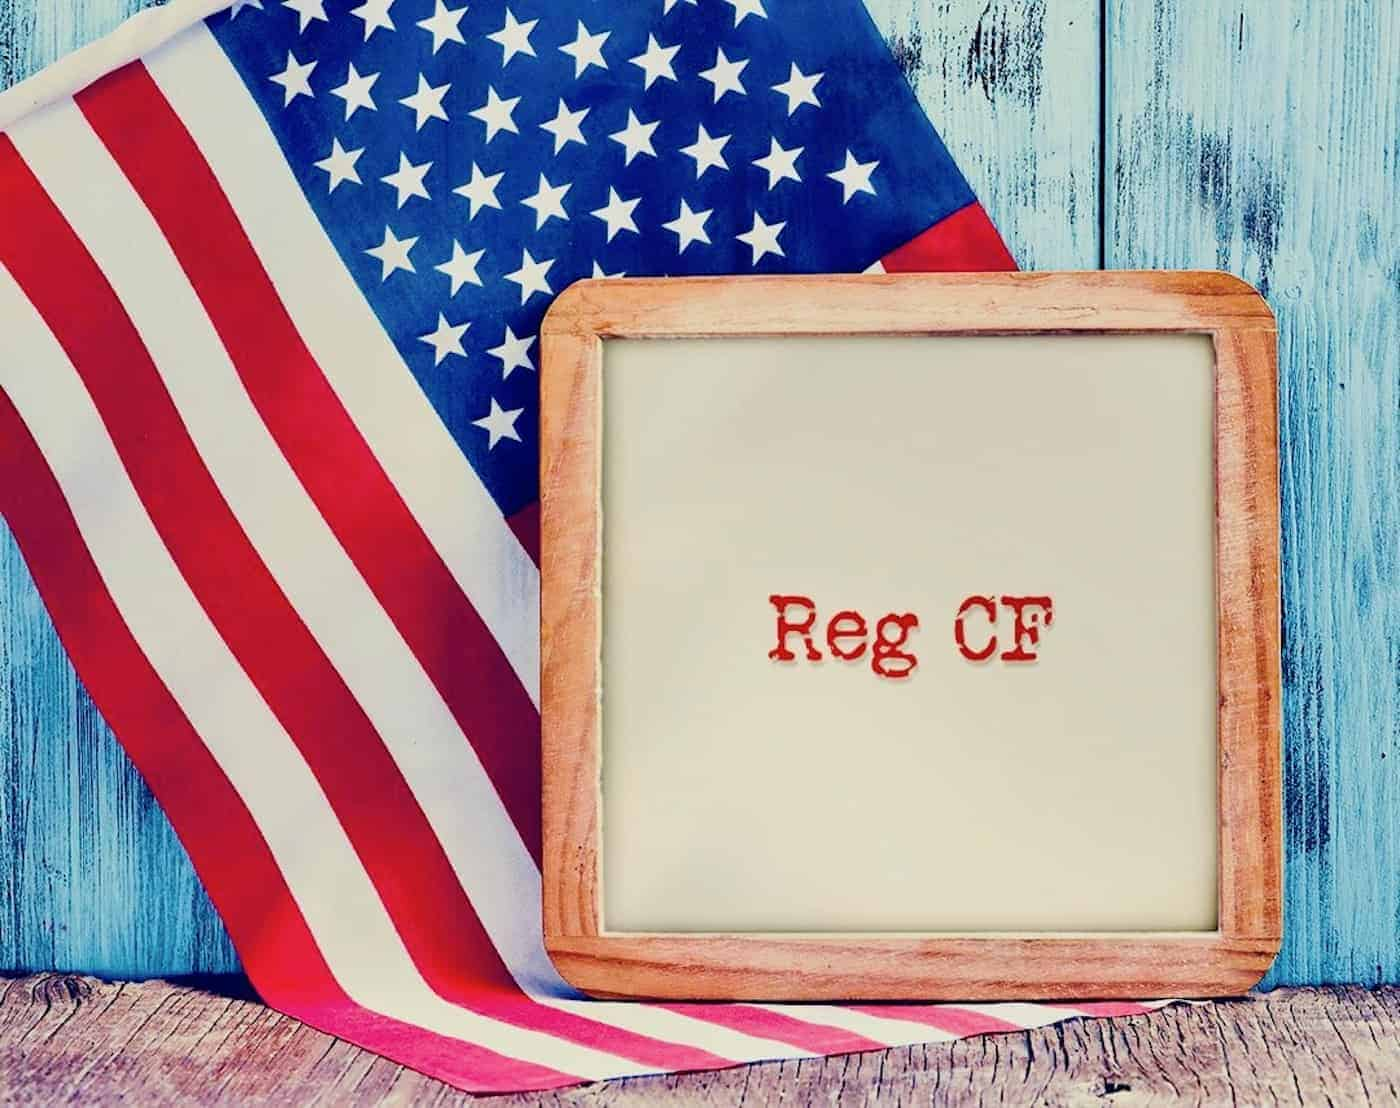 Reg CF Update: Three New FINRA Regulated Portals Enter – One is Blockchain Based, One is Canadian & One to Finance Videos